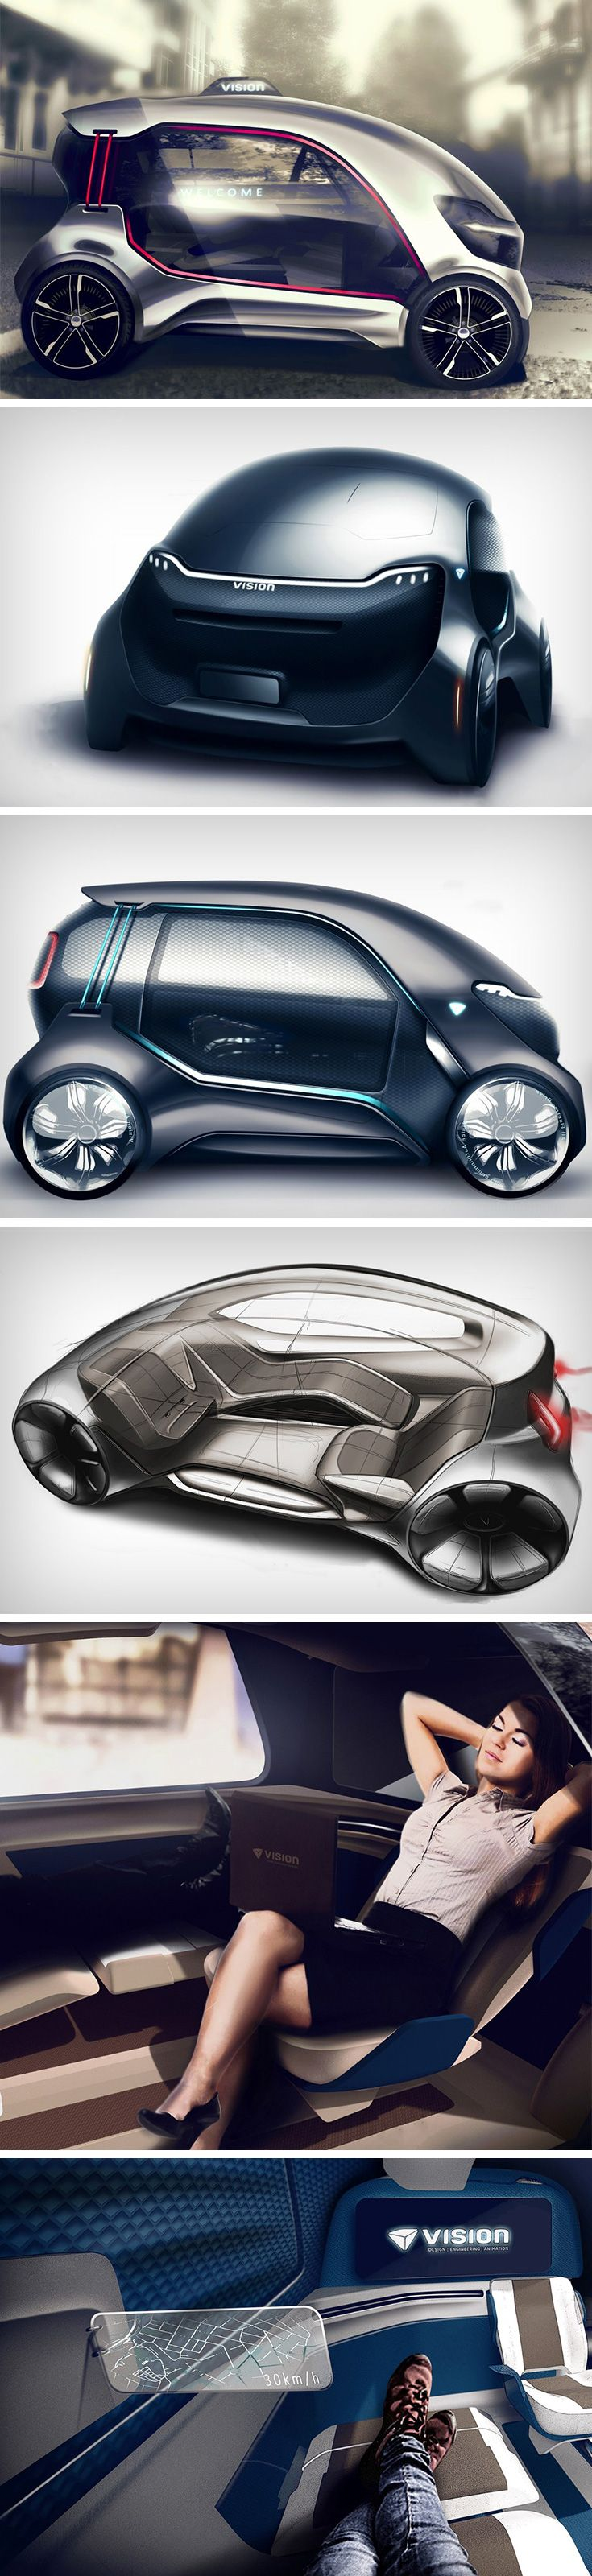 The vision city concept car by guilherme kataoka is designed to make travel a different experience to commuters who will now ride to places instead of to